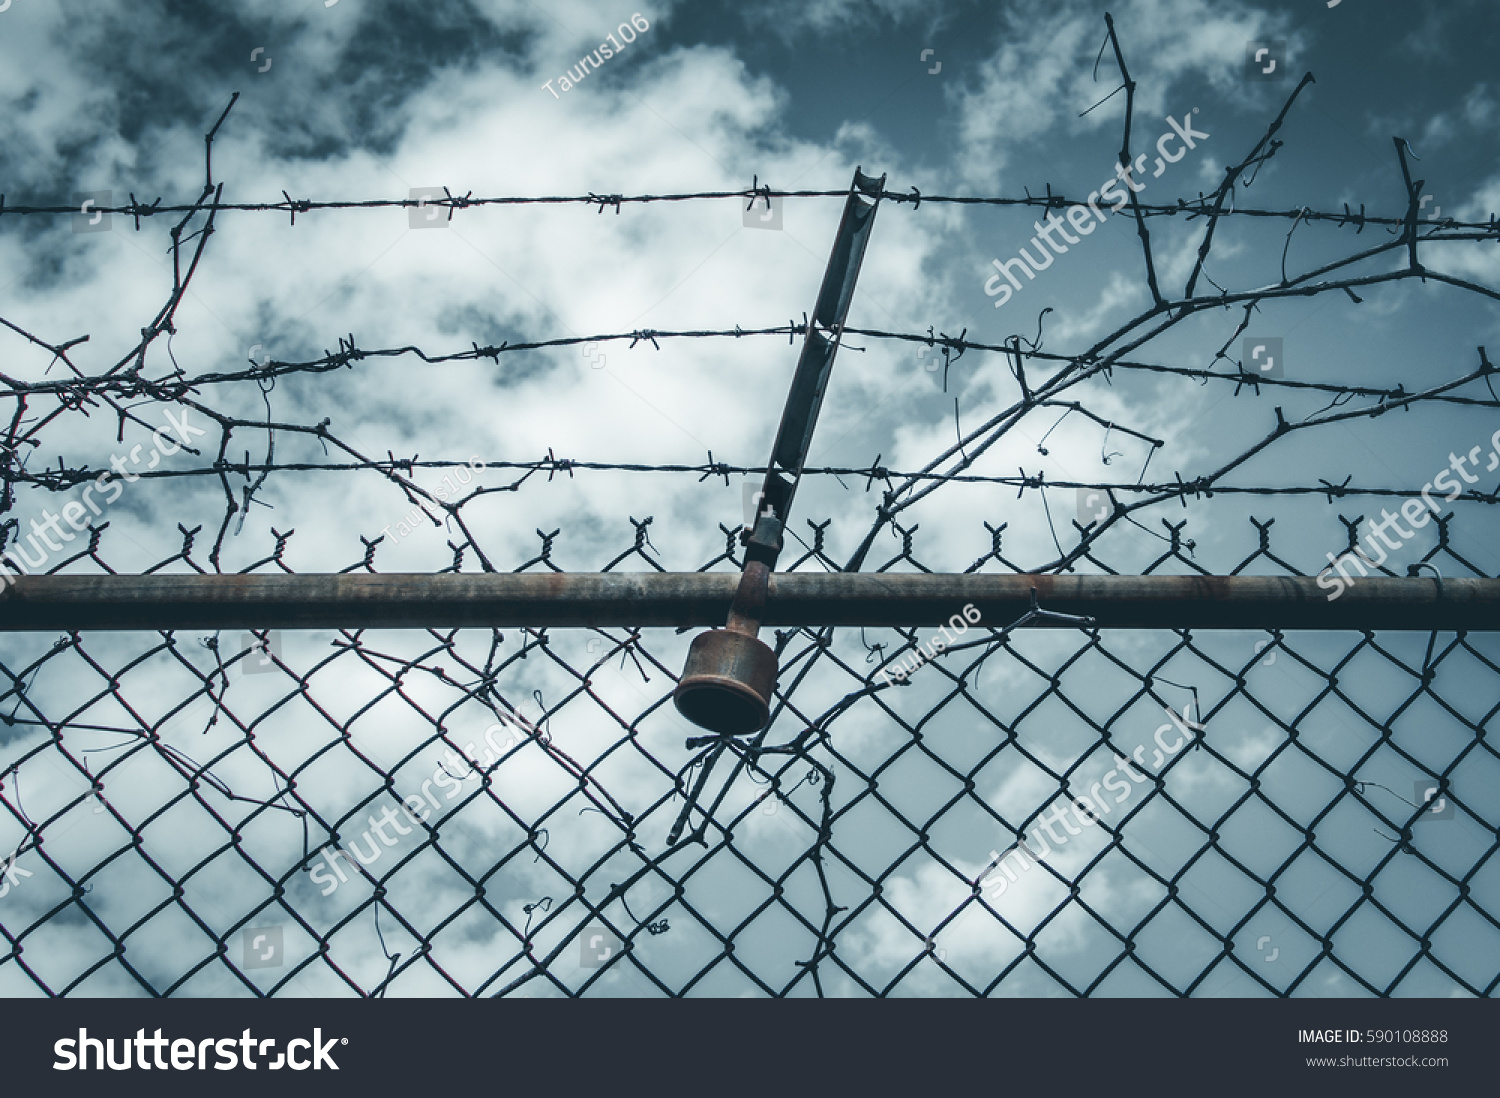 Abstract Chain Link Fence Barbed Wire Stock Photo (Edit Now ...